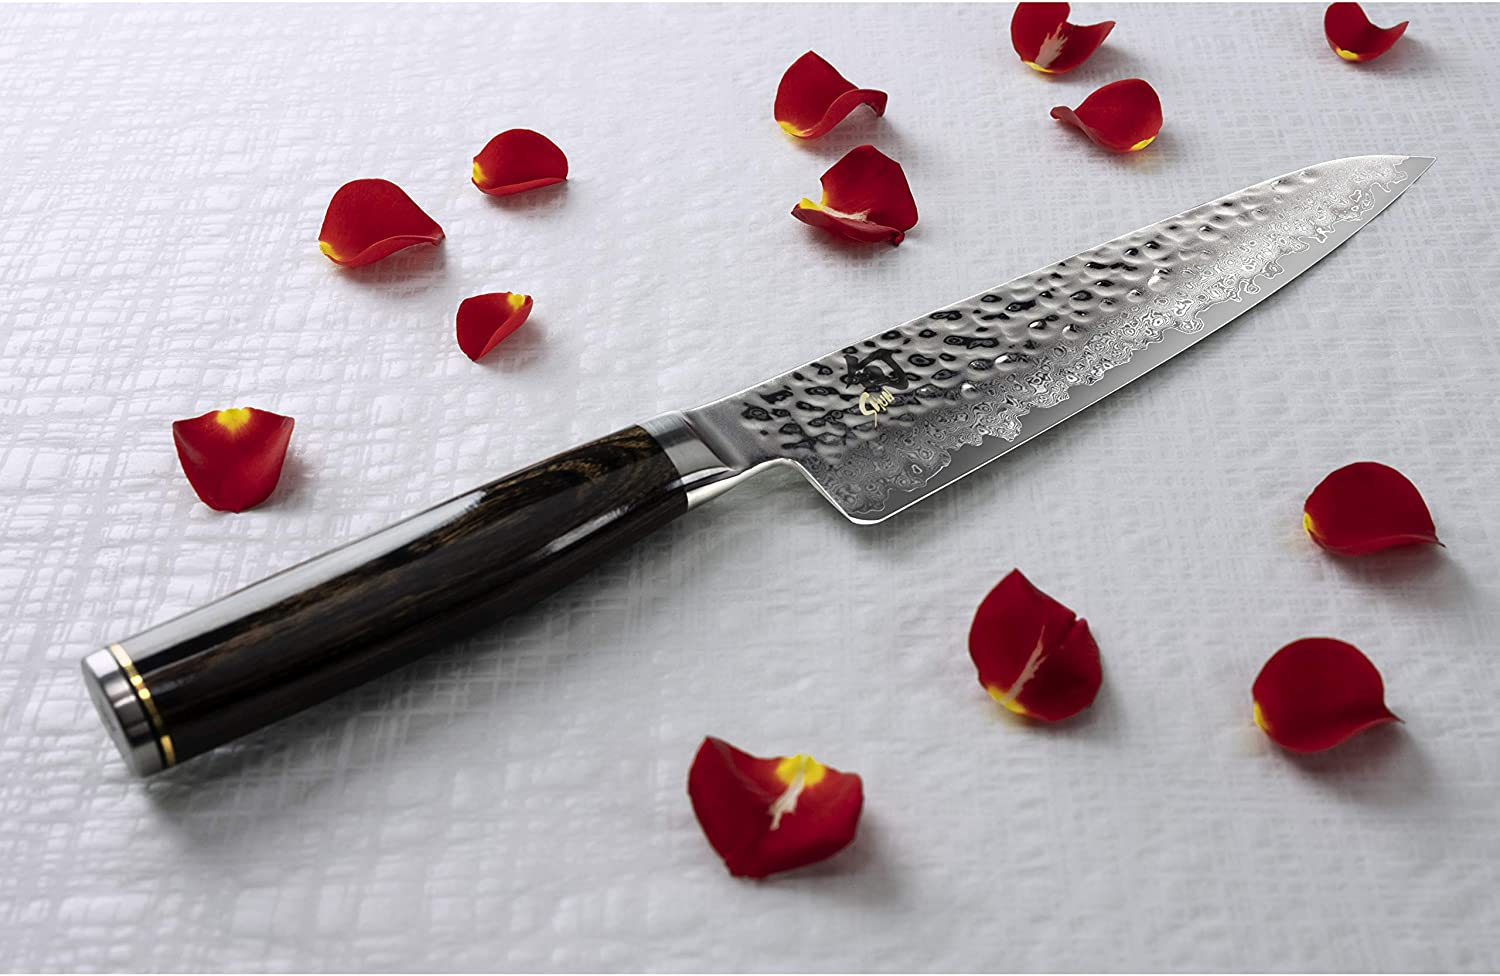 Asian Cook's Knife